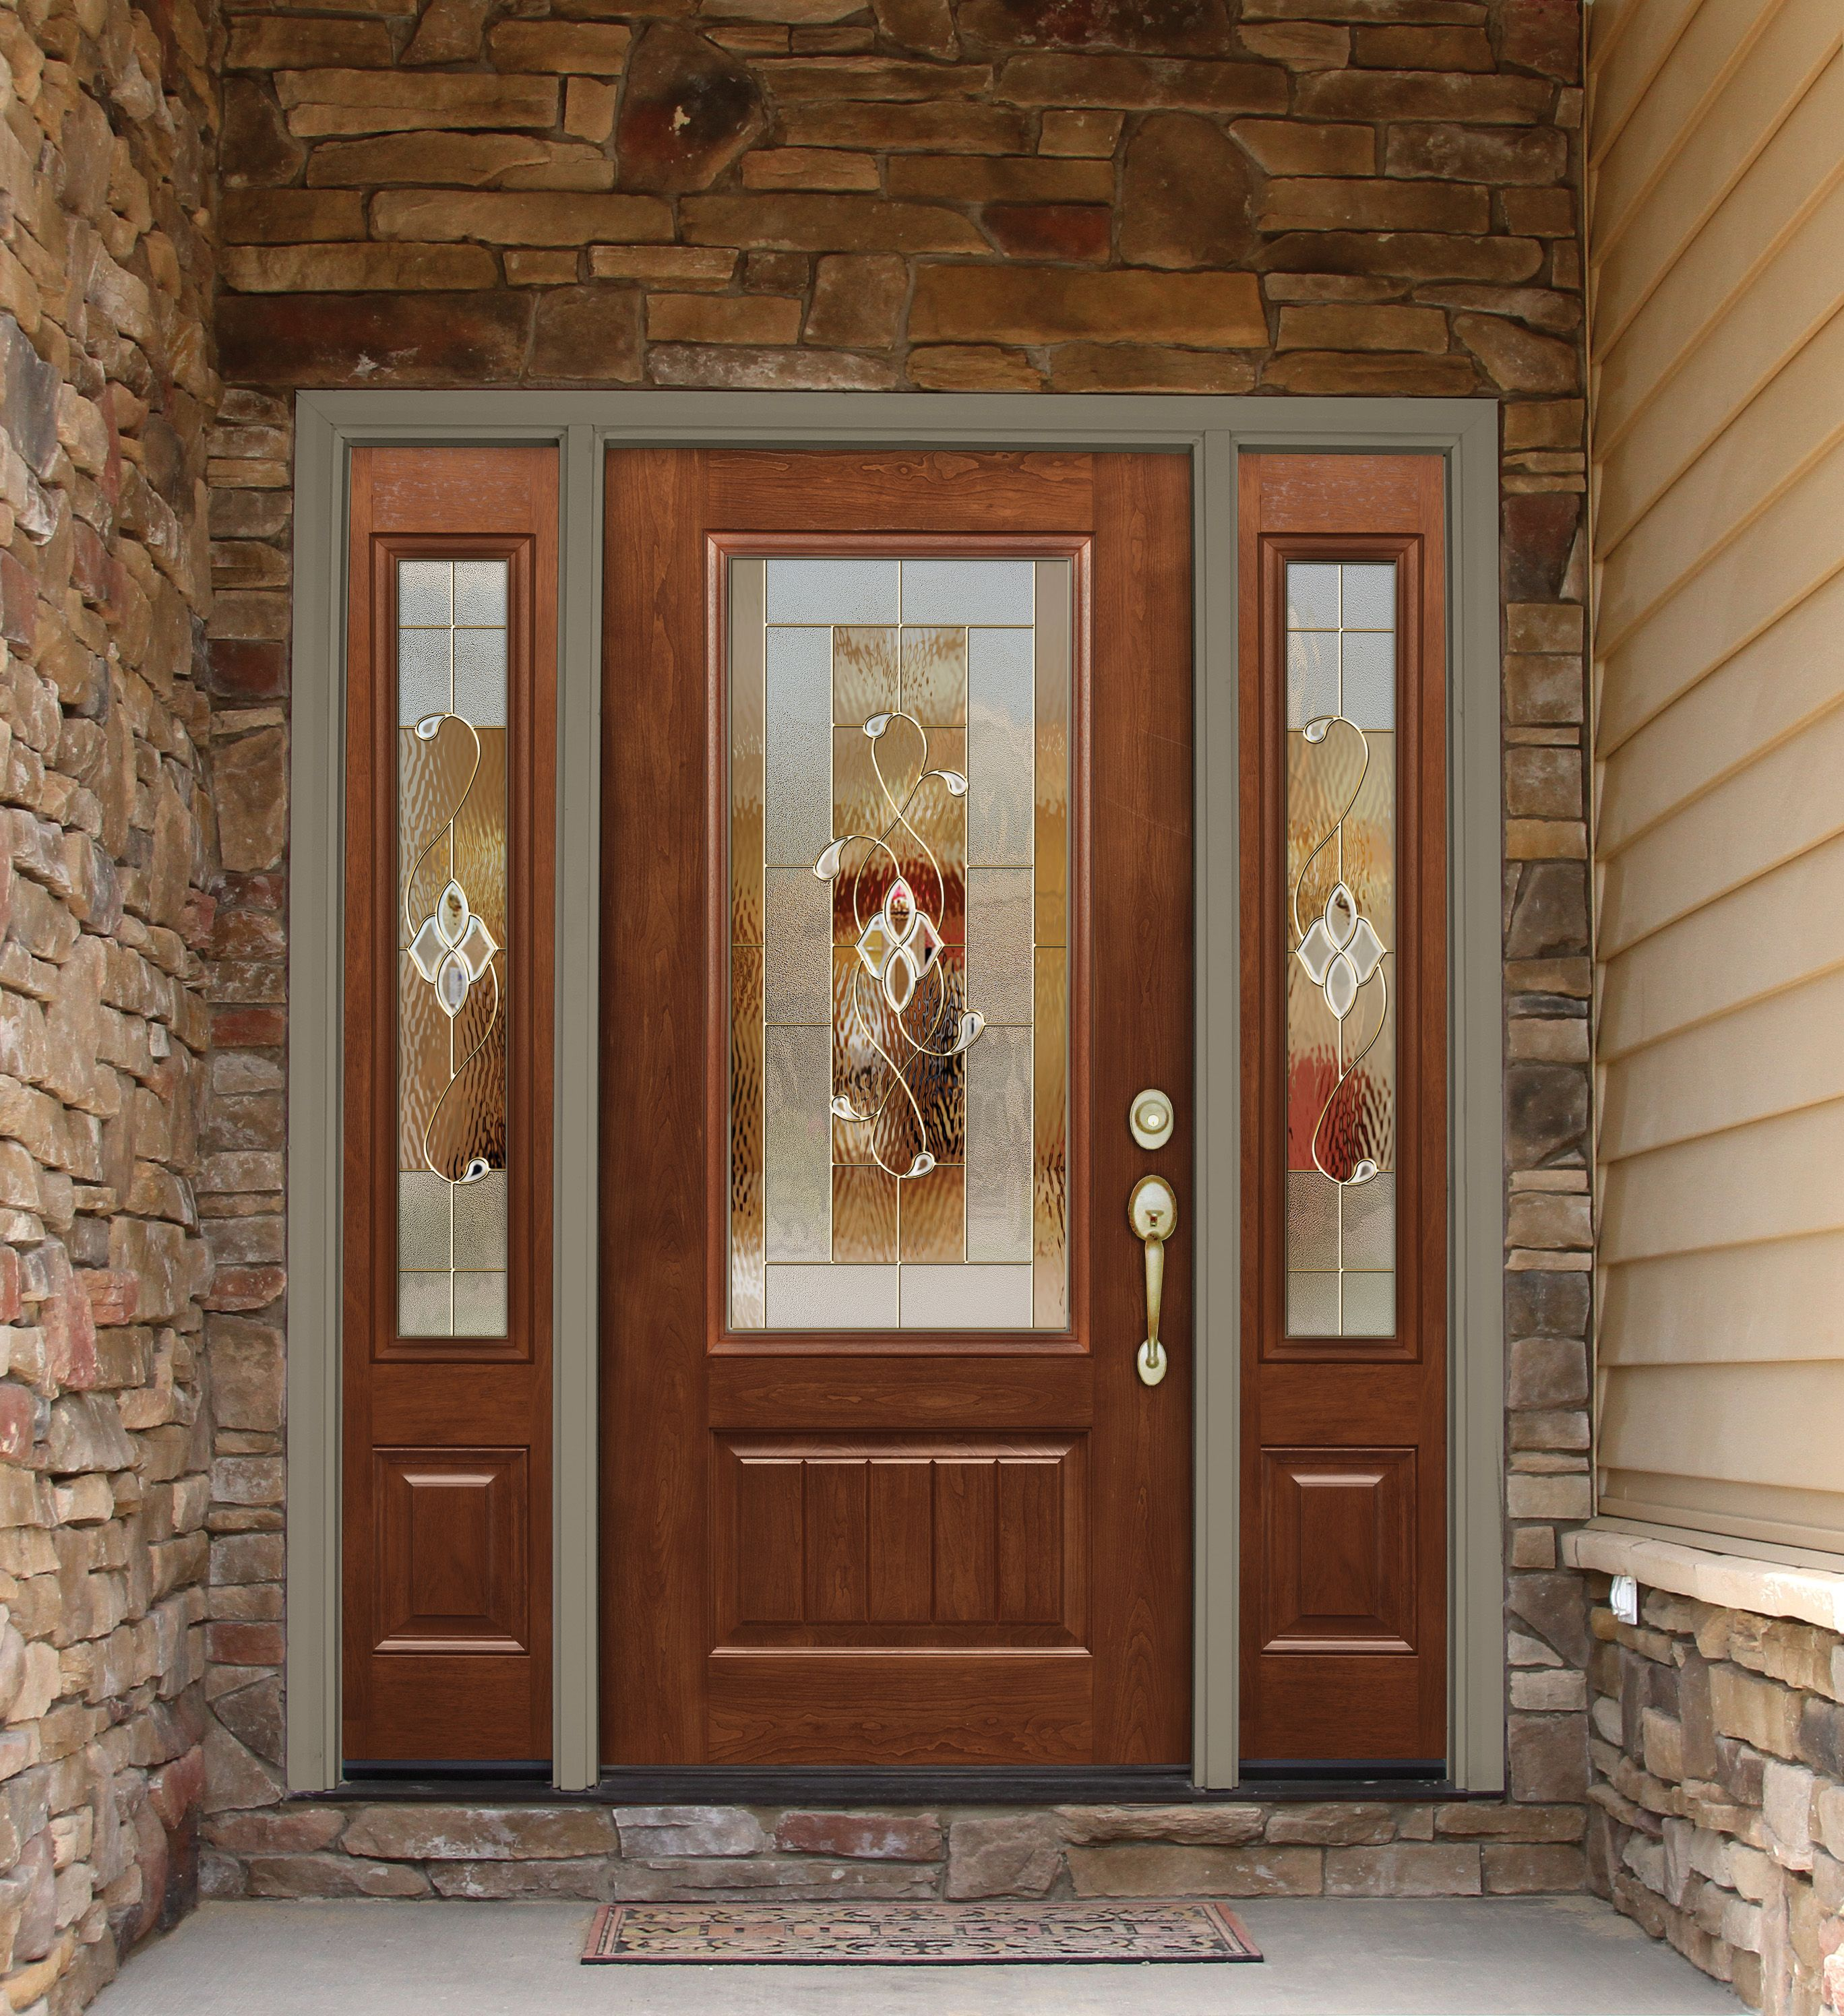 Essence Decorative Glass From Provia Is Shown Here On This Beautiful Signet Fiberglass Door And Sidelites Stained Glass Door Entry Doors Decorative Door Glass